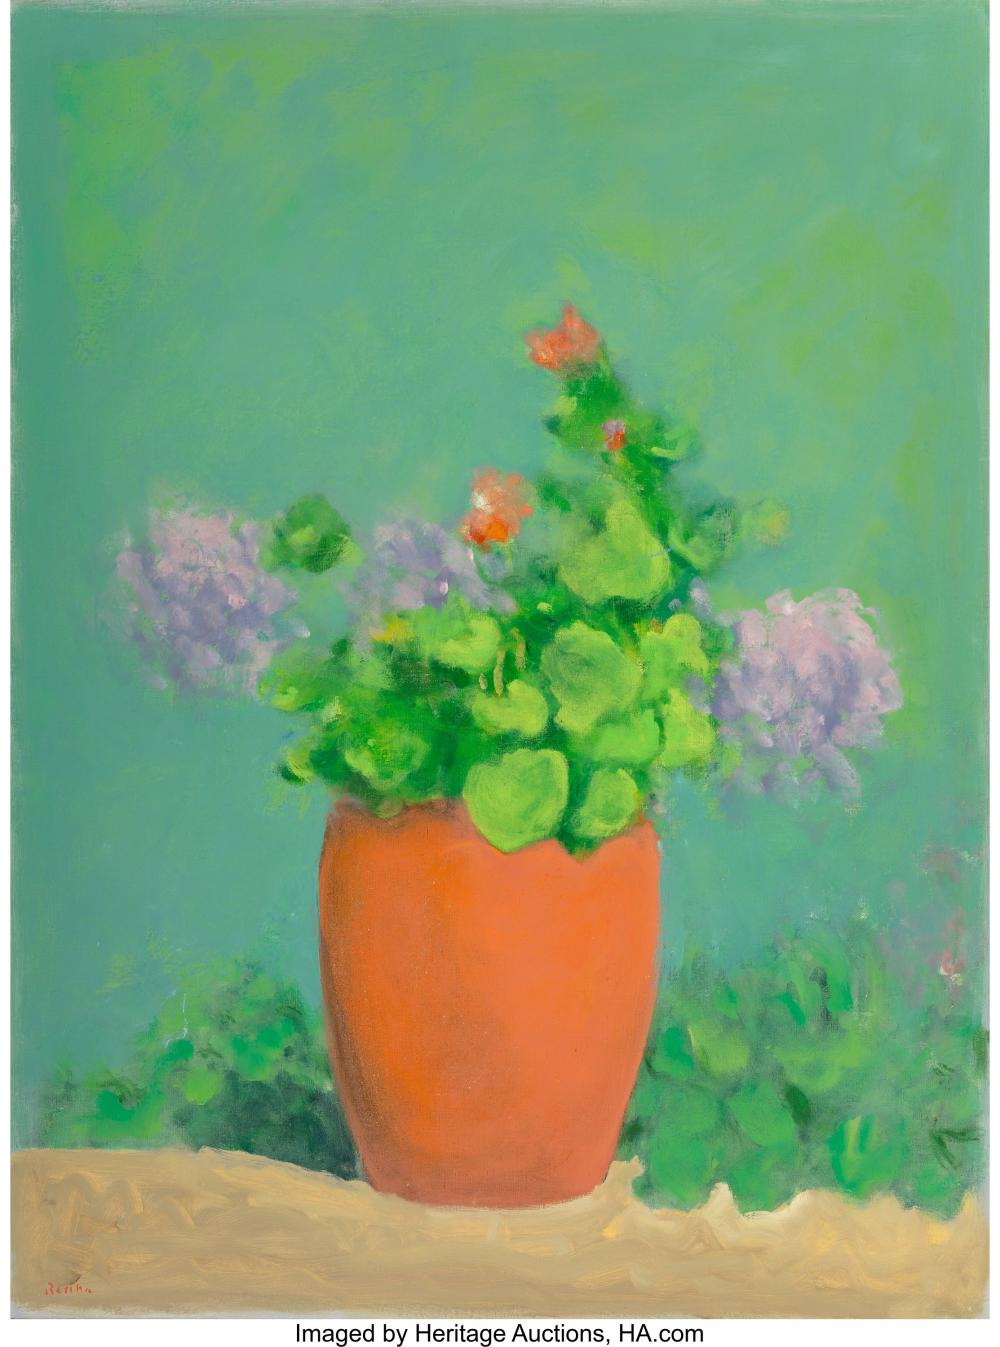 Paul Resika (American, b. 1928) Geraniums Oil on canvas 48-3/4 x 36-1/2 inches (